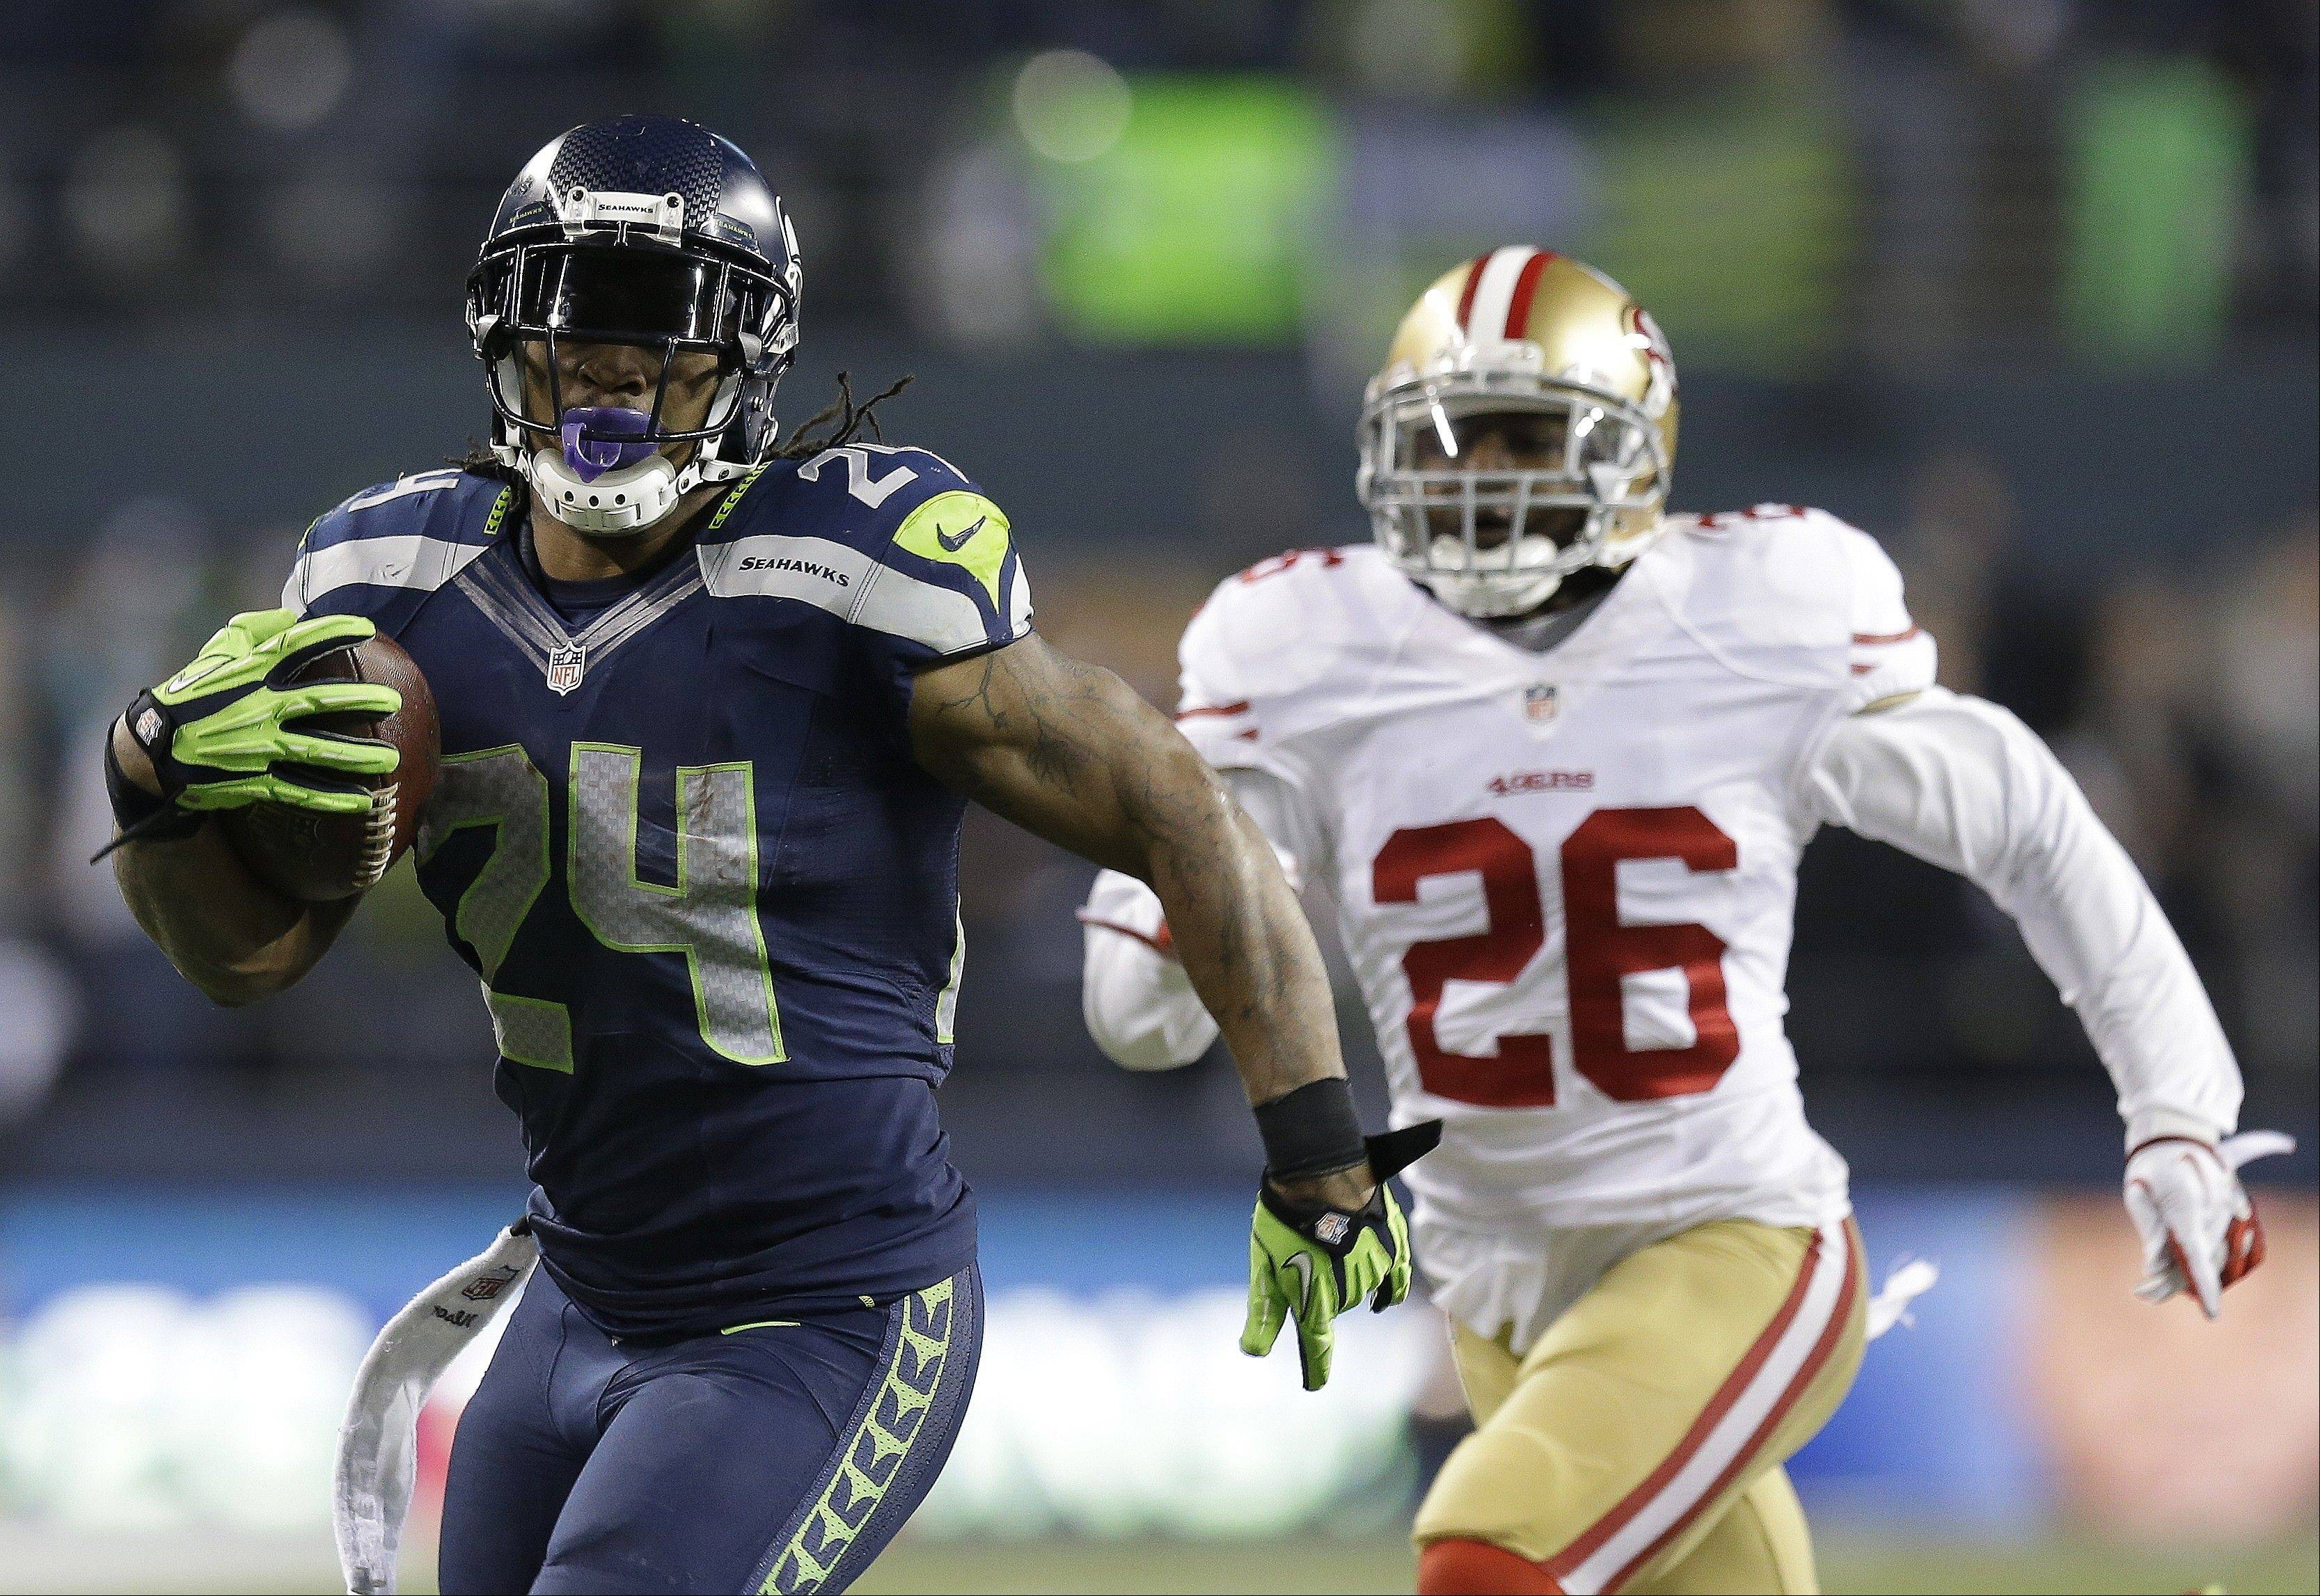 Seattle Seahawks running back Marshawn Lynch breaks away from the San Francisco 49ers� Tramaine Brock for a touch-down run during the second half of the NFL football NFC Championship game, Sunday, Jan. 19, 2014, in Seattle.